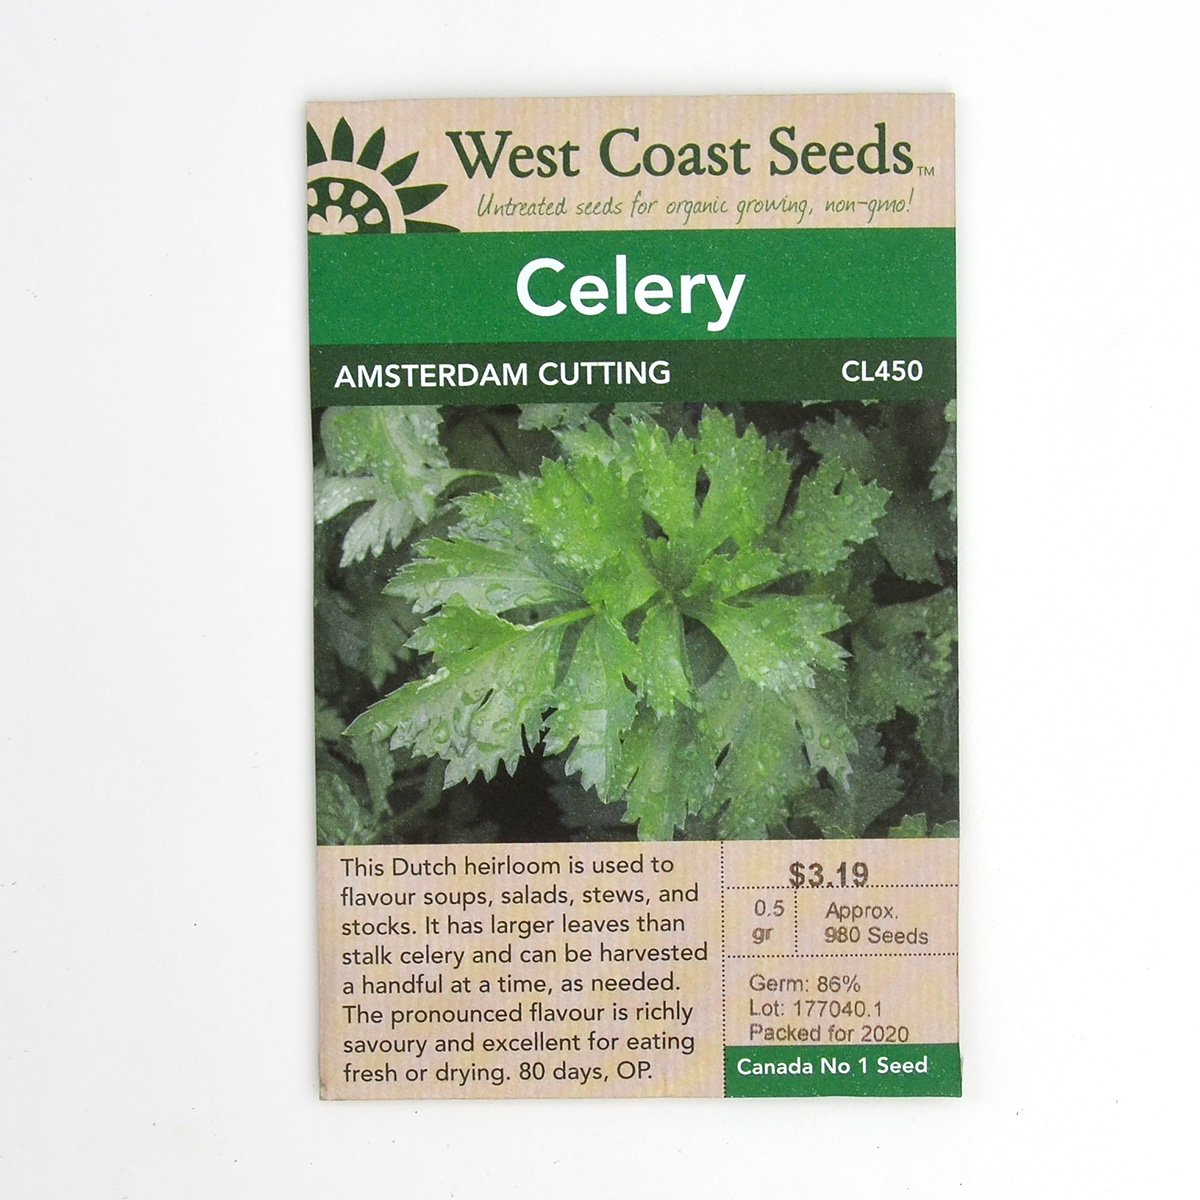 Celery Amsterdam Cutting Seeds CL450